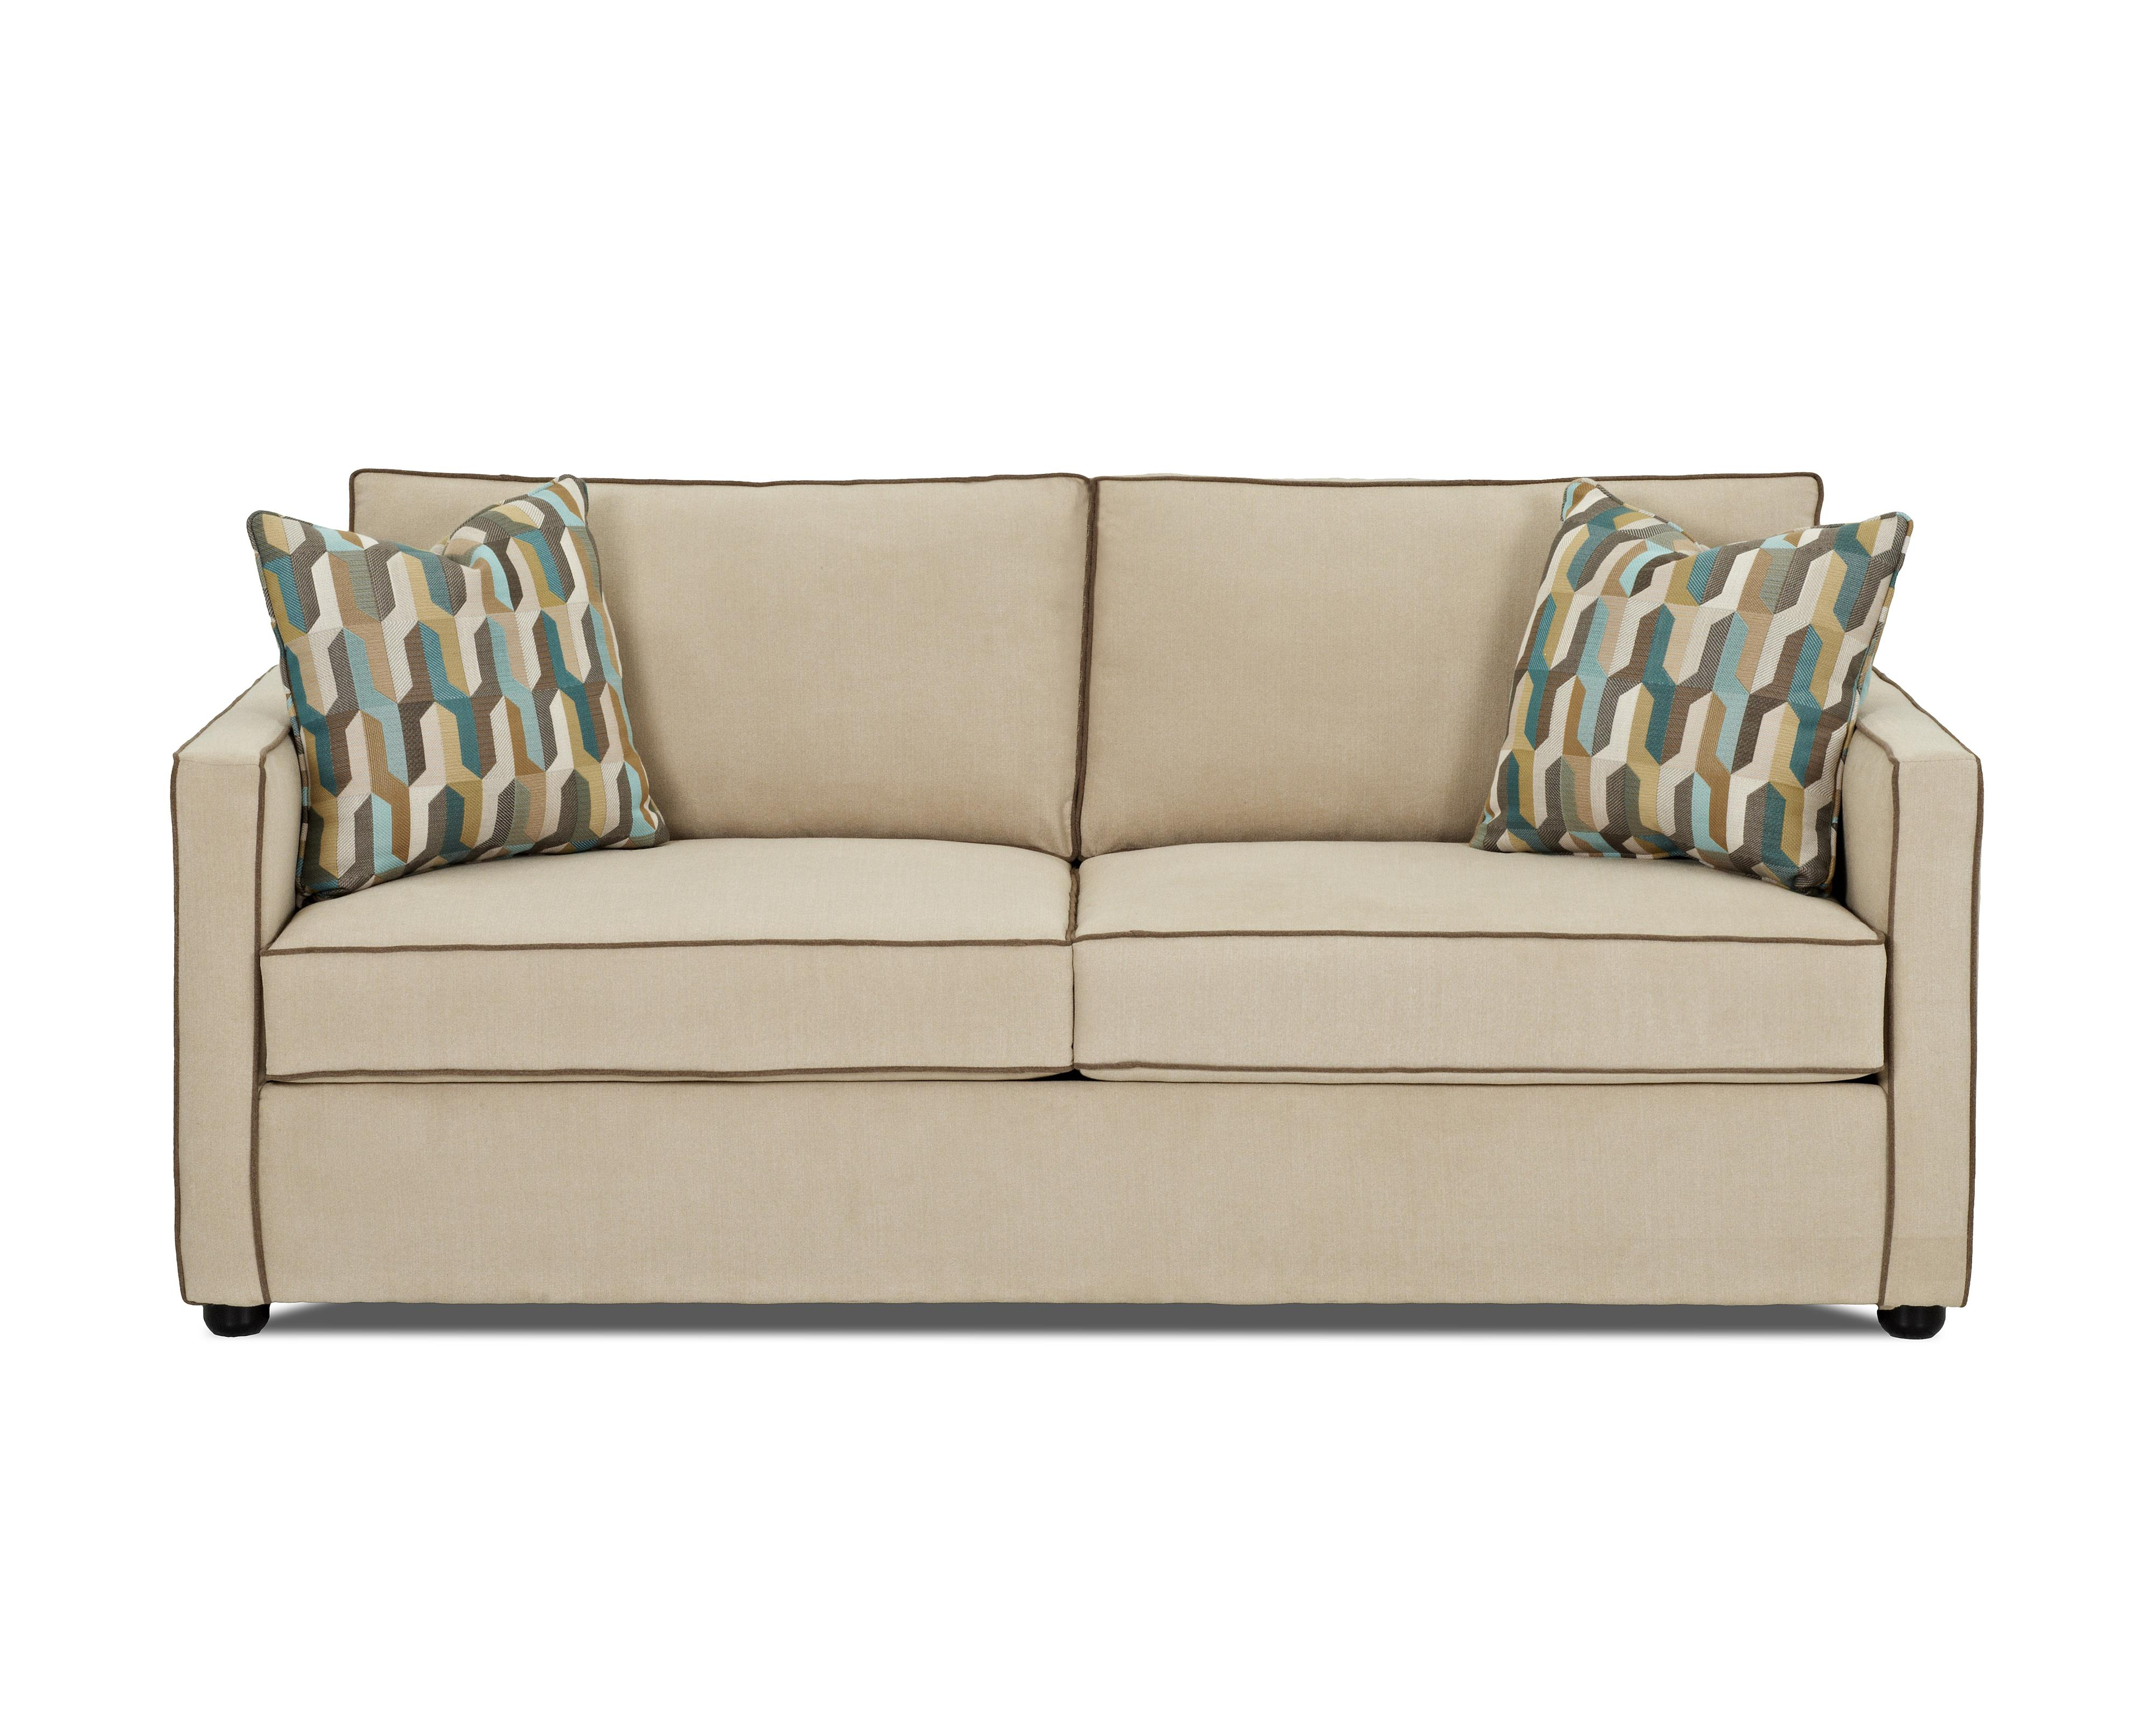 Klaussner Pendry Contemporary Queen Dreamquest Sleeper Sofa with